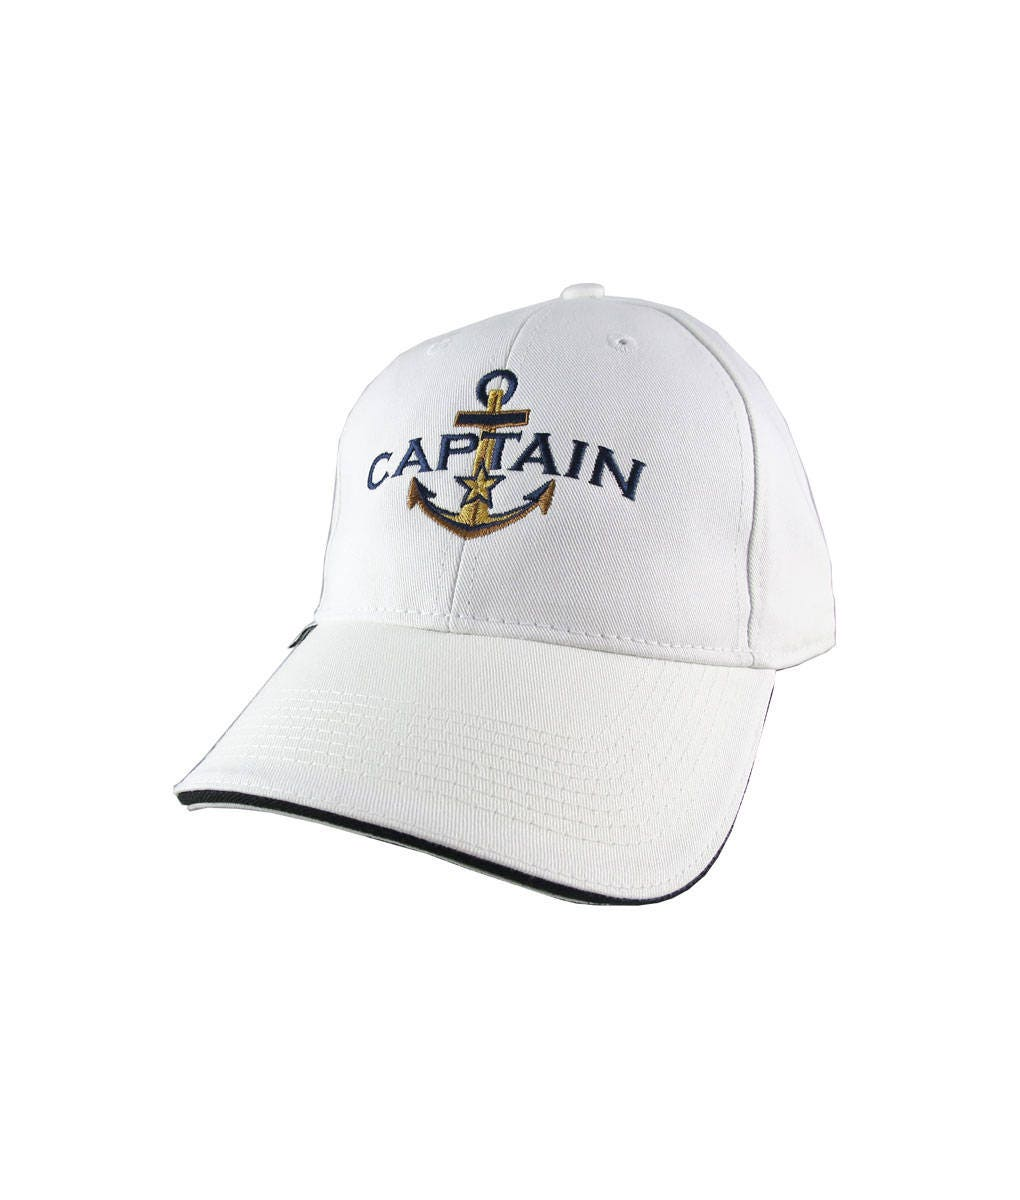 0bd7d455e4a08 Personalized Captain Star Anchor Embroidery on an Adjustable White  Structured Fashion Baseball Cap with Options to Personalize Side Back